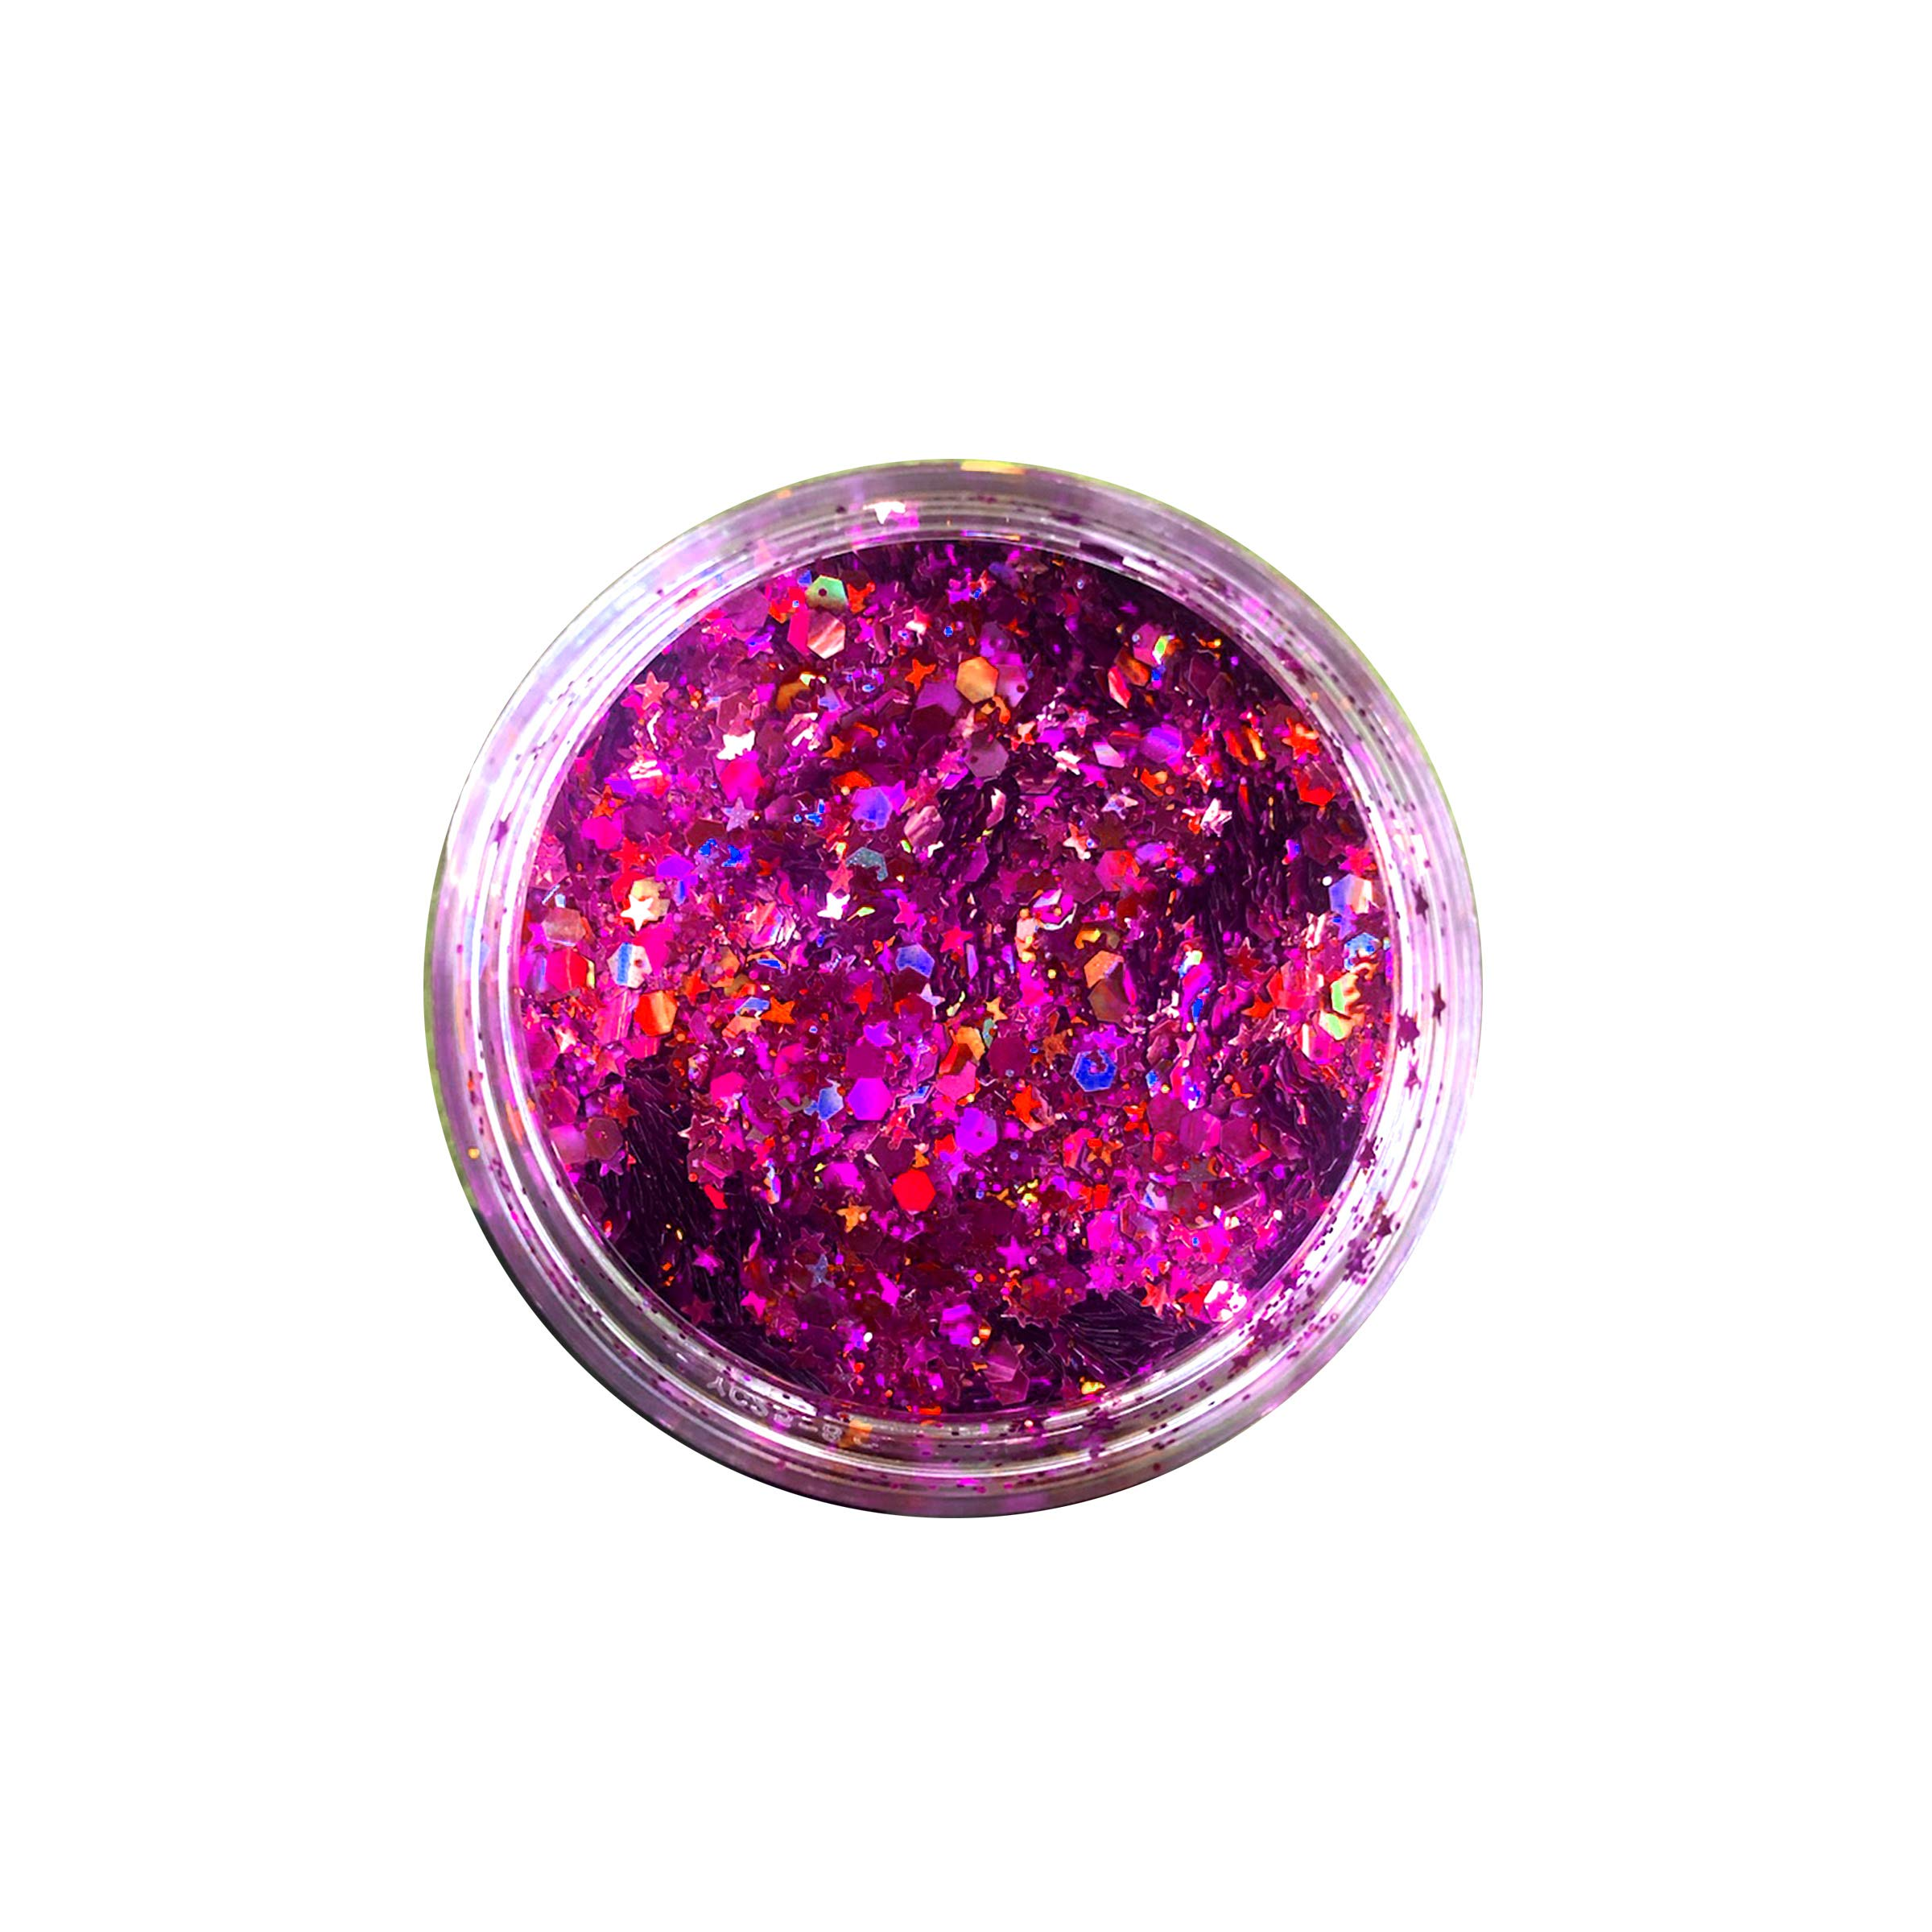 Neva Nude Raspberry Rushie Pink Large Makeup Artist Pot Holographic Chunky Loose Glitter Sparkle 238ML Festival Rave Face Body Hair by Neva Nude (Image #2)